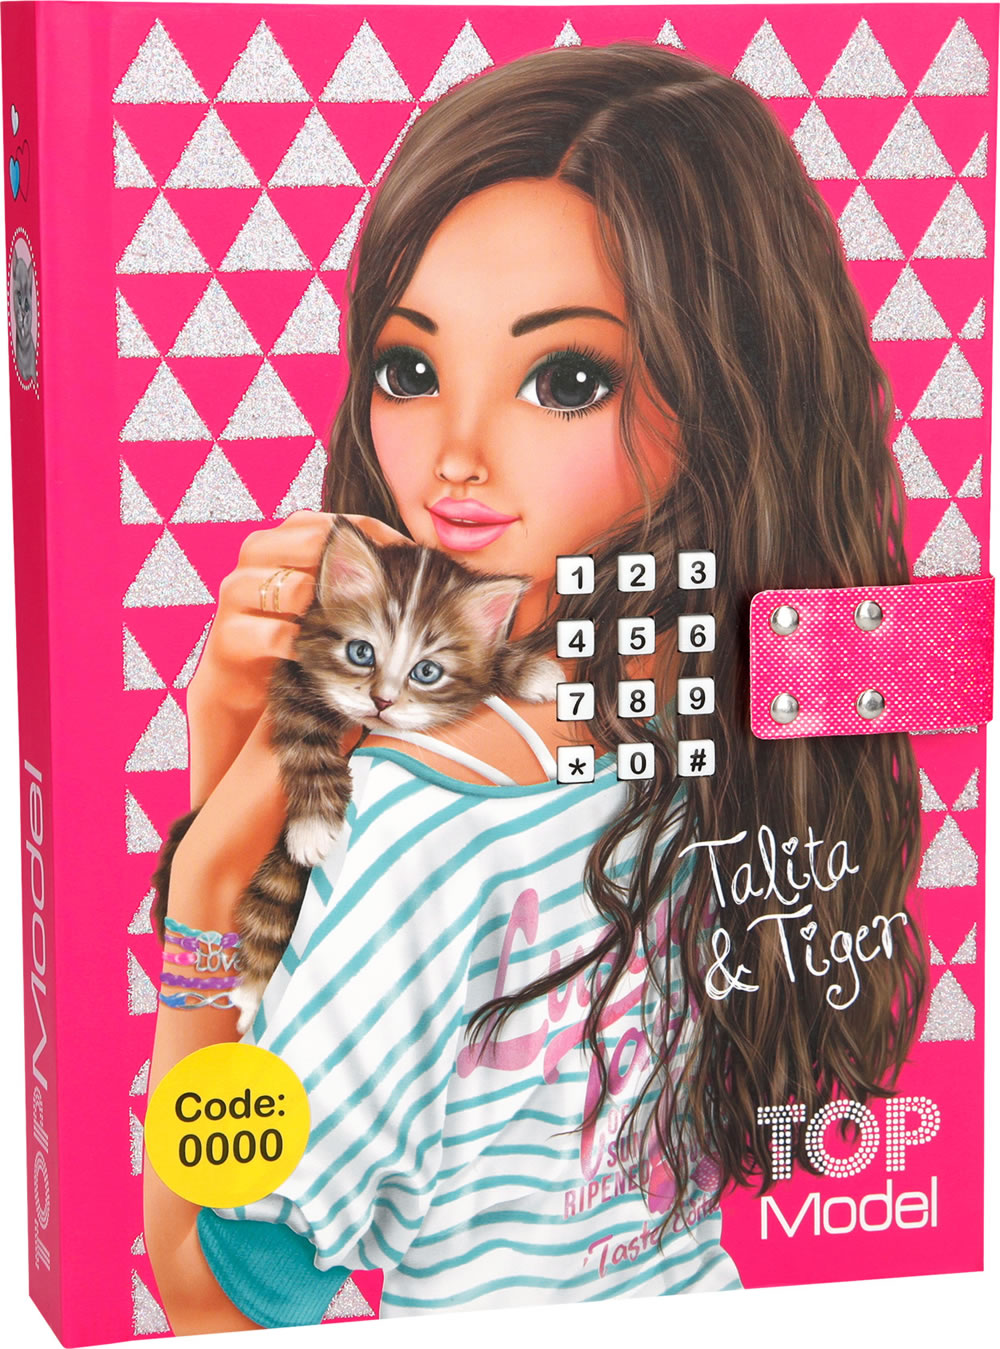 TOPModel Diary With Secret Code Talita & Tiger Online At